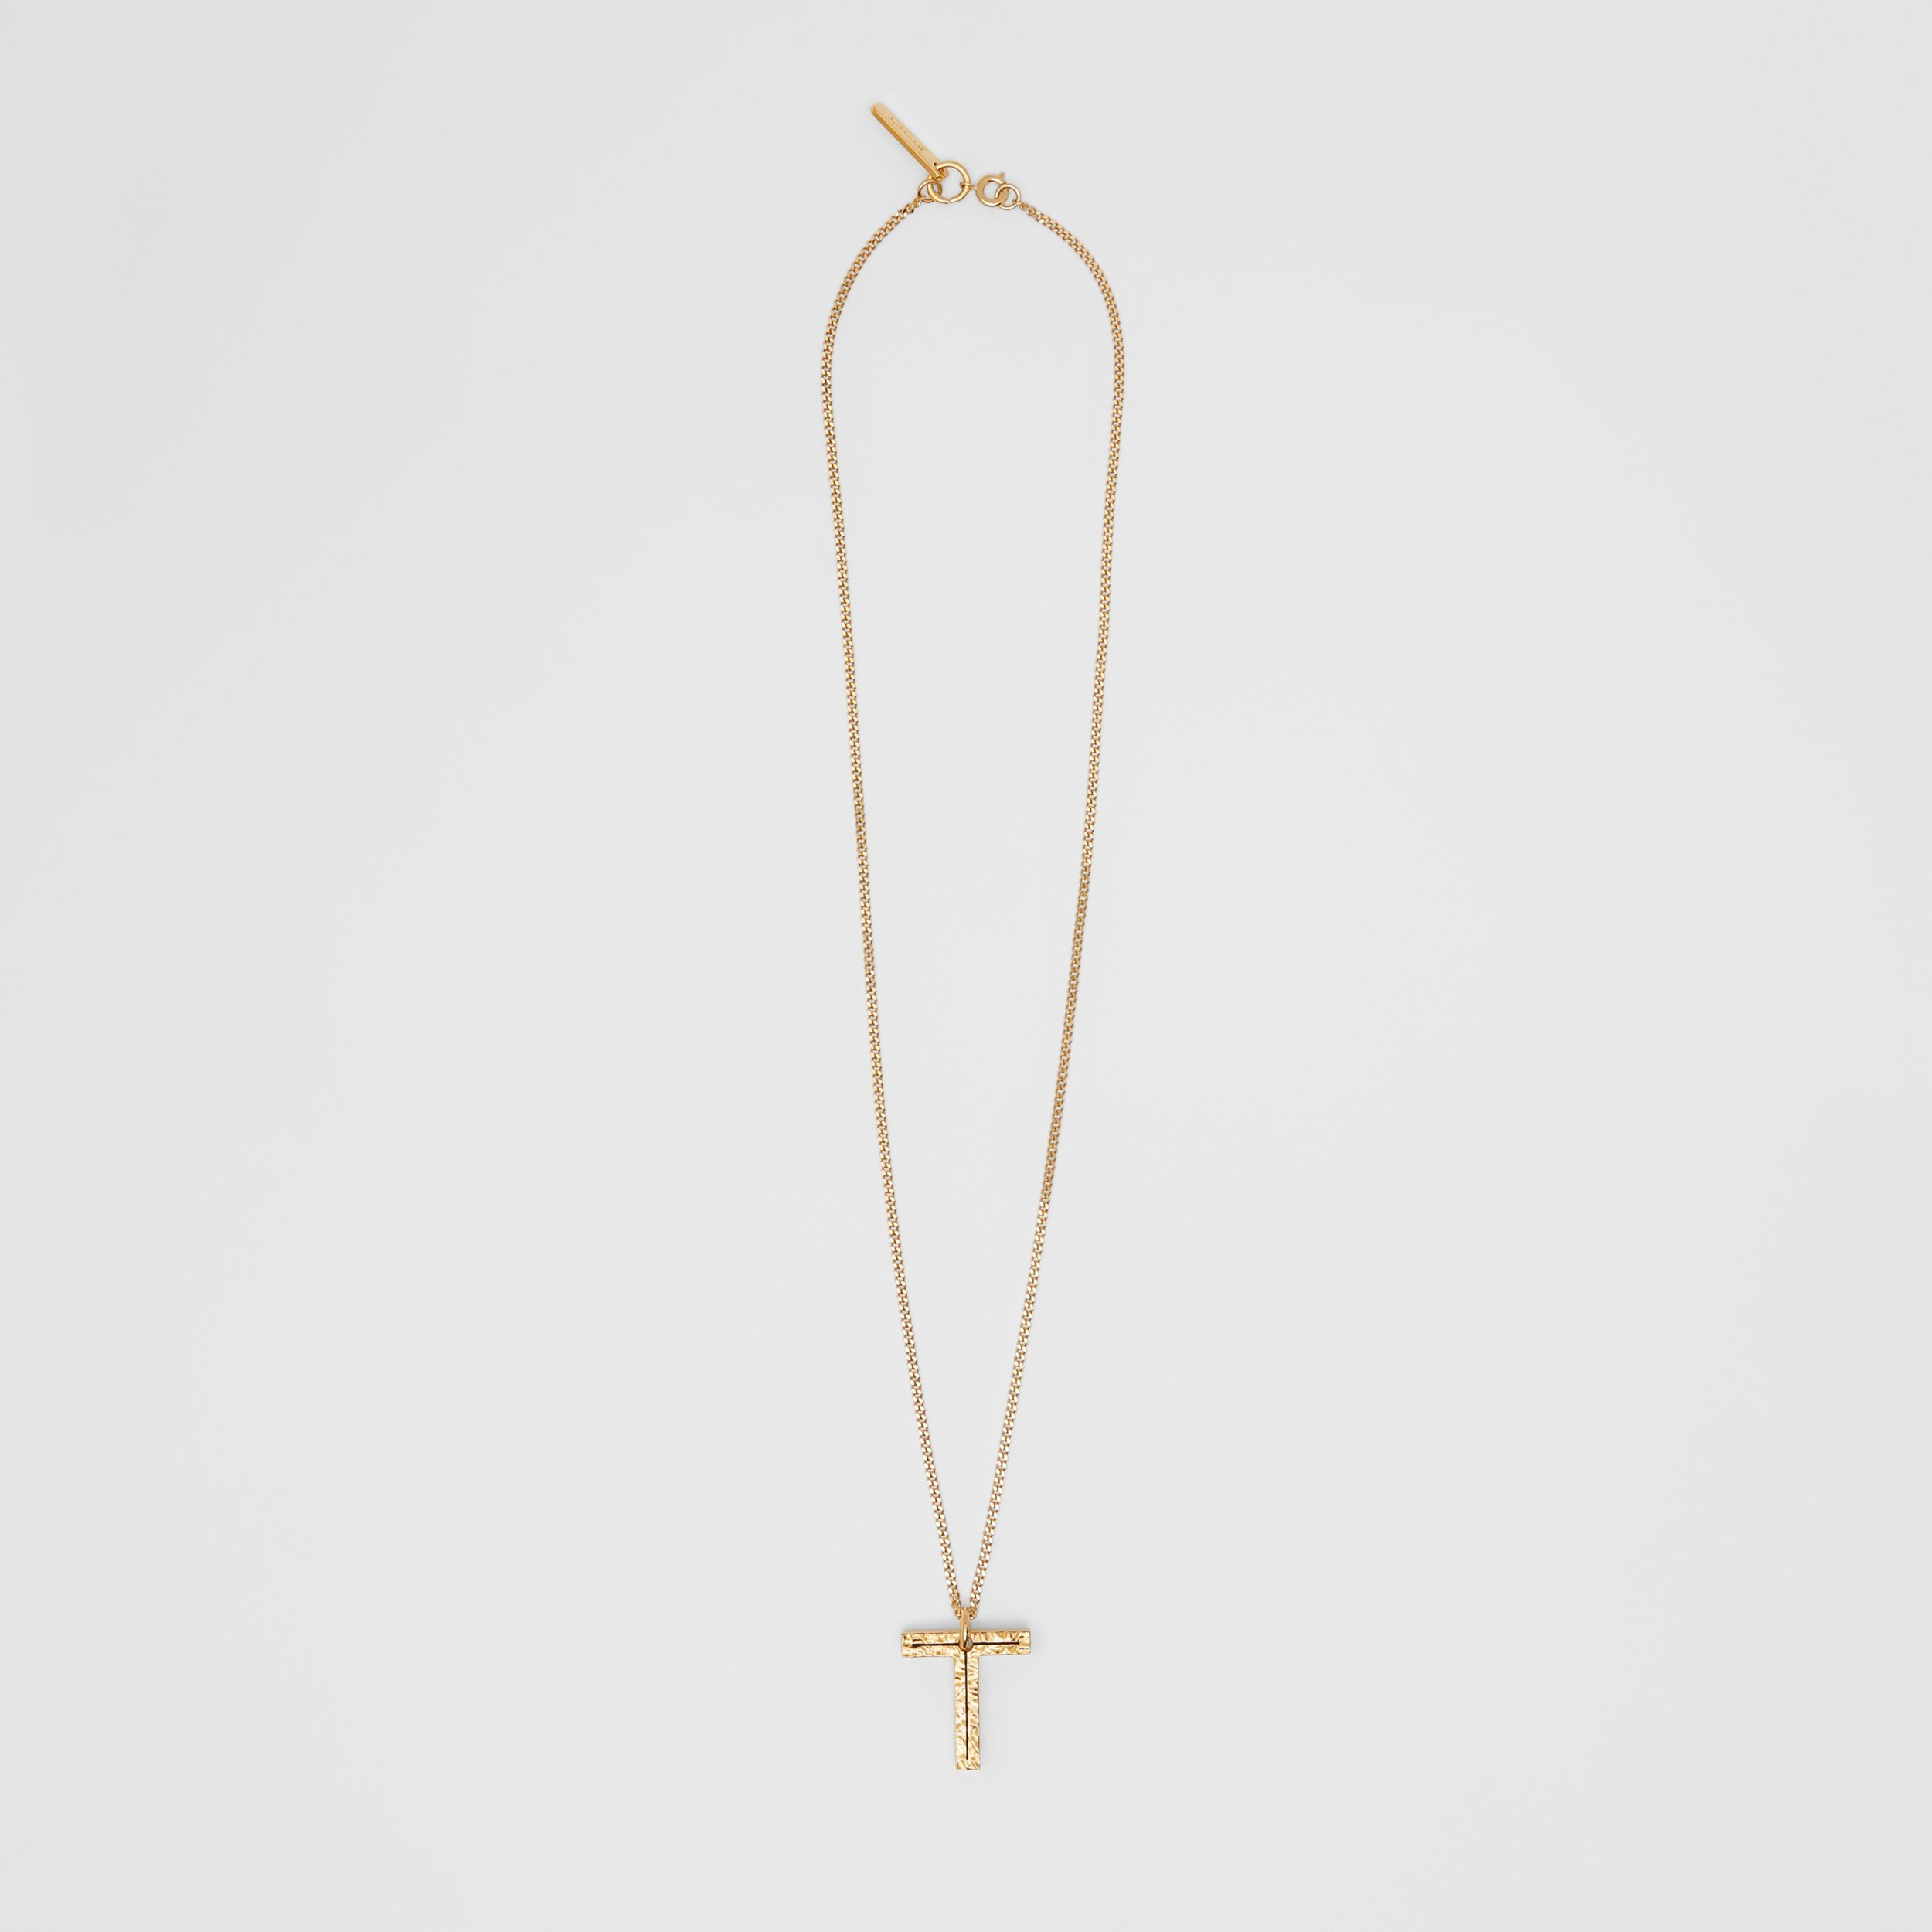 'T' Alphabet Charm Gold-plated Necklace in Light - Women | Burberry - 1